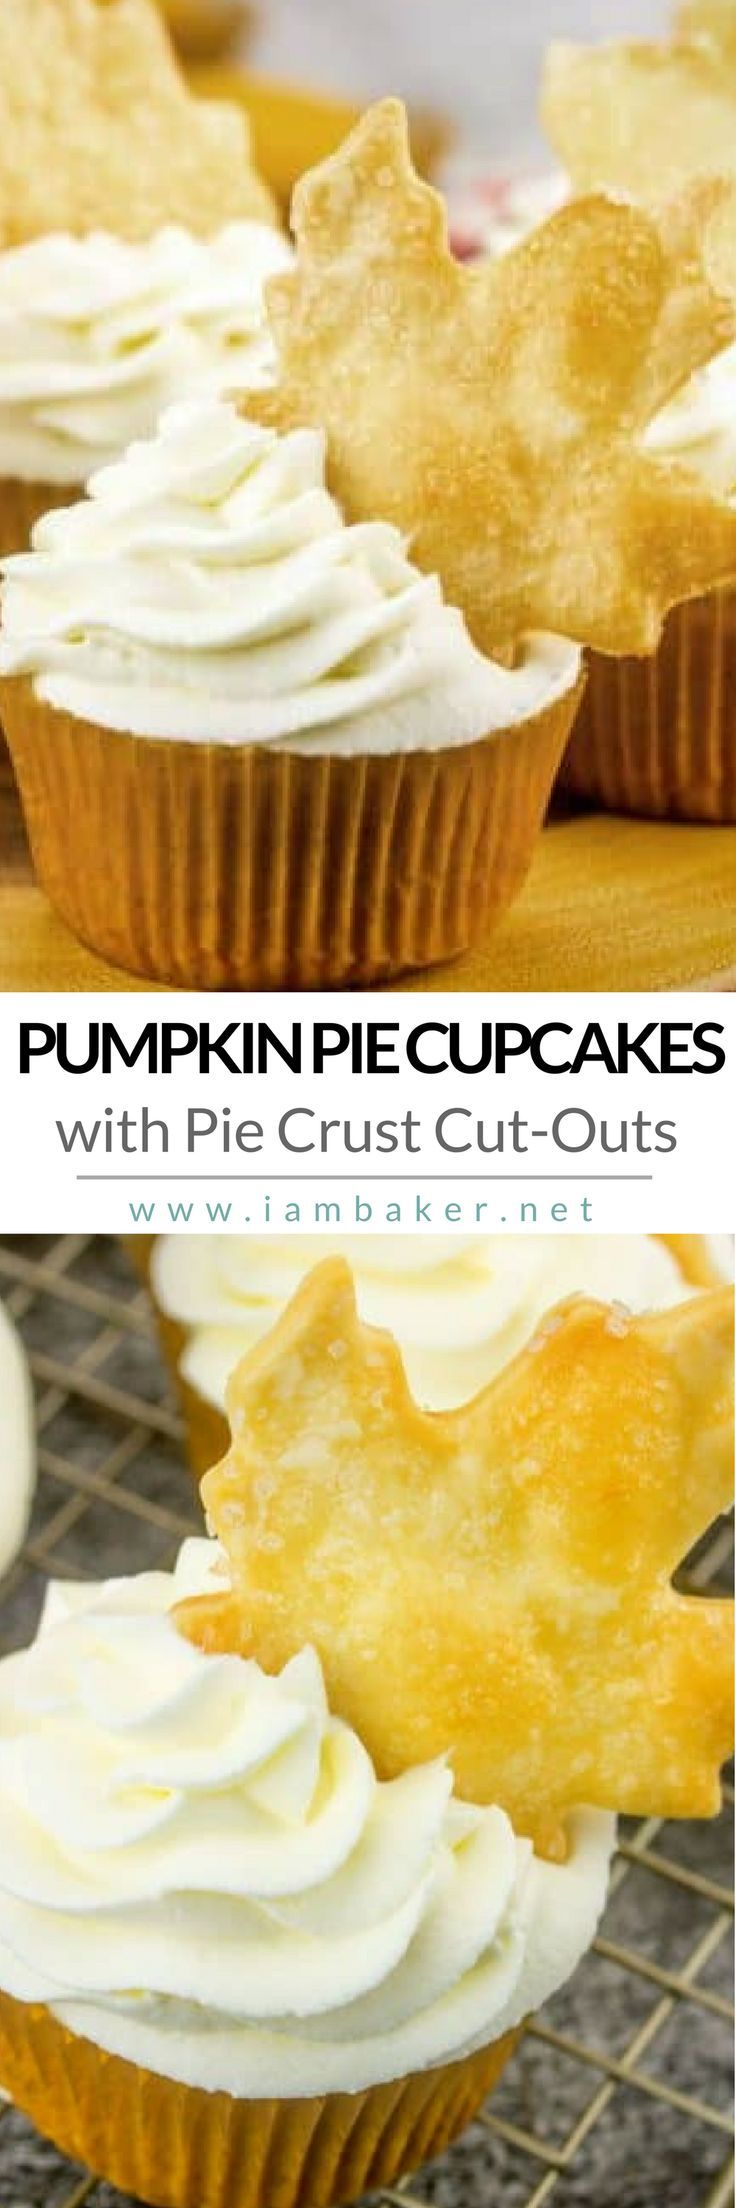 Create an easy and delicious dessert recipe with these Pumpkin Pie Cupcakes! Fall is in full bloom and Thanksgiving is right around the corner! If you're thinking of a sweet treat to make, this simple homemade cupcake will be pretty good for your family! More easy dessert recipes @iambaker #iambaker #iambakerdessert #iambakercupcake #pumpkinpie #pumpkinrecipes